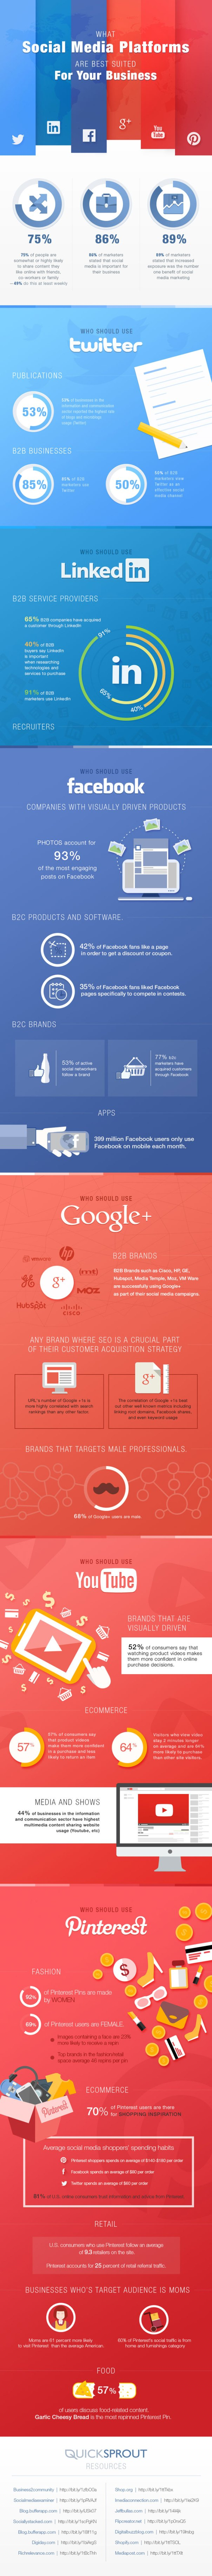 what-social-media-sites-are-best-for-business-infographic (2)